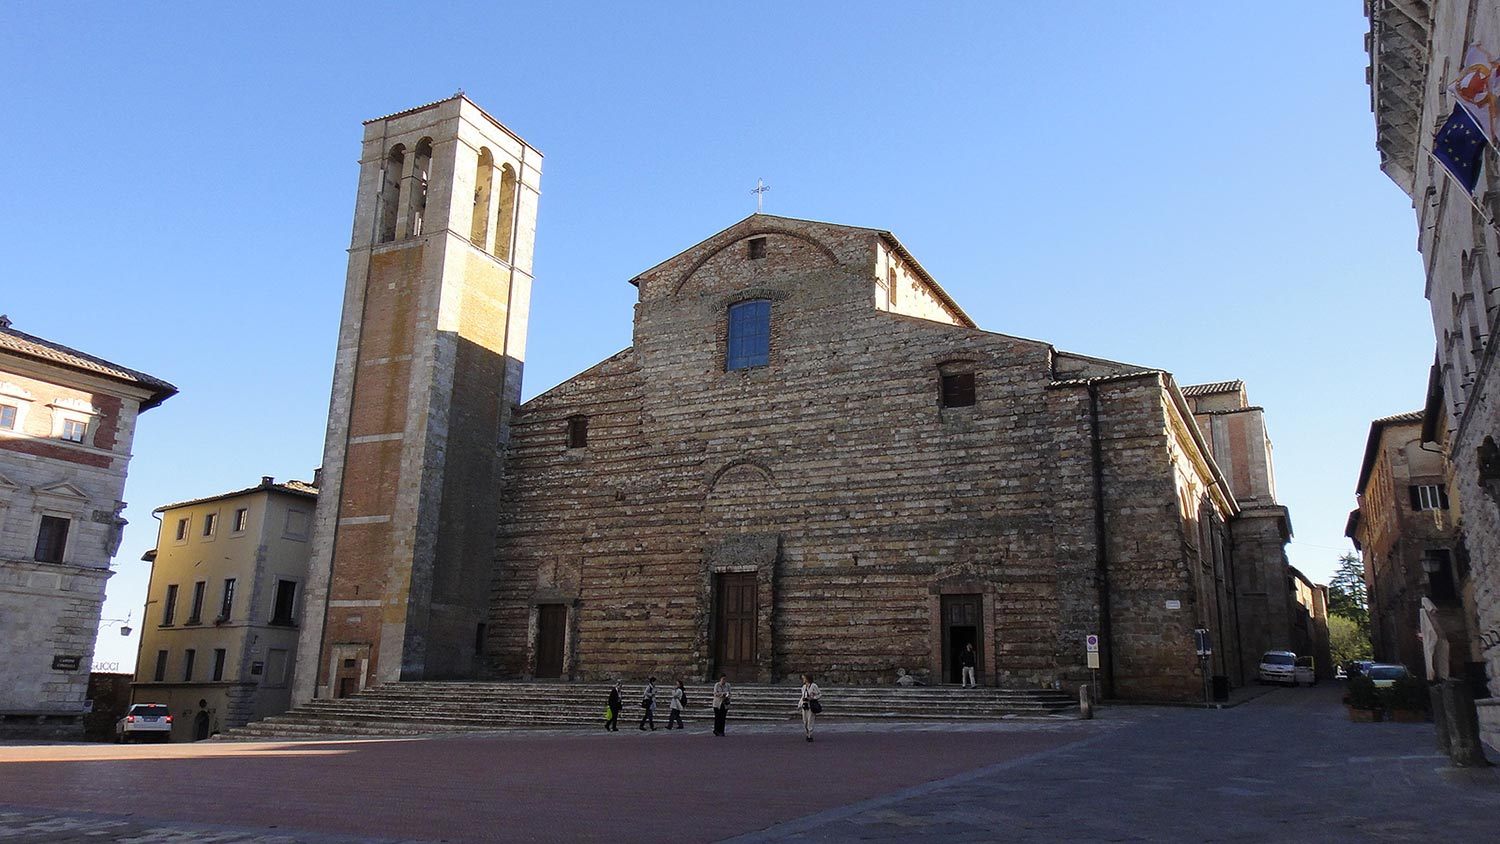 Which churches should be visited in Montepulciano?